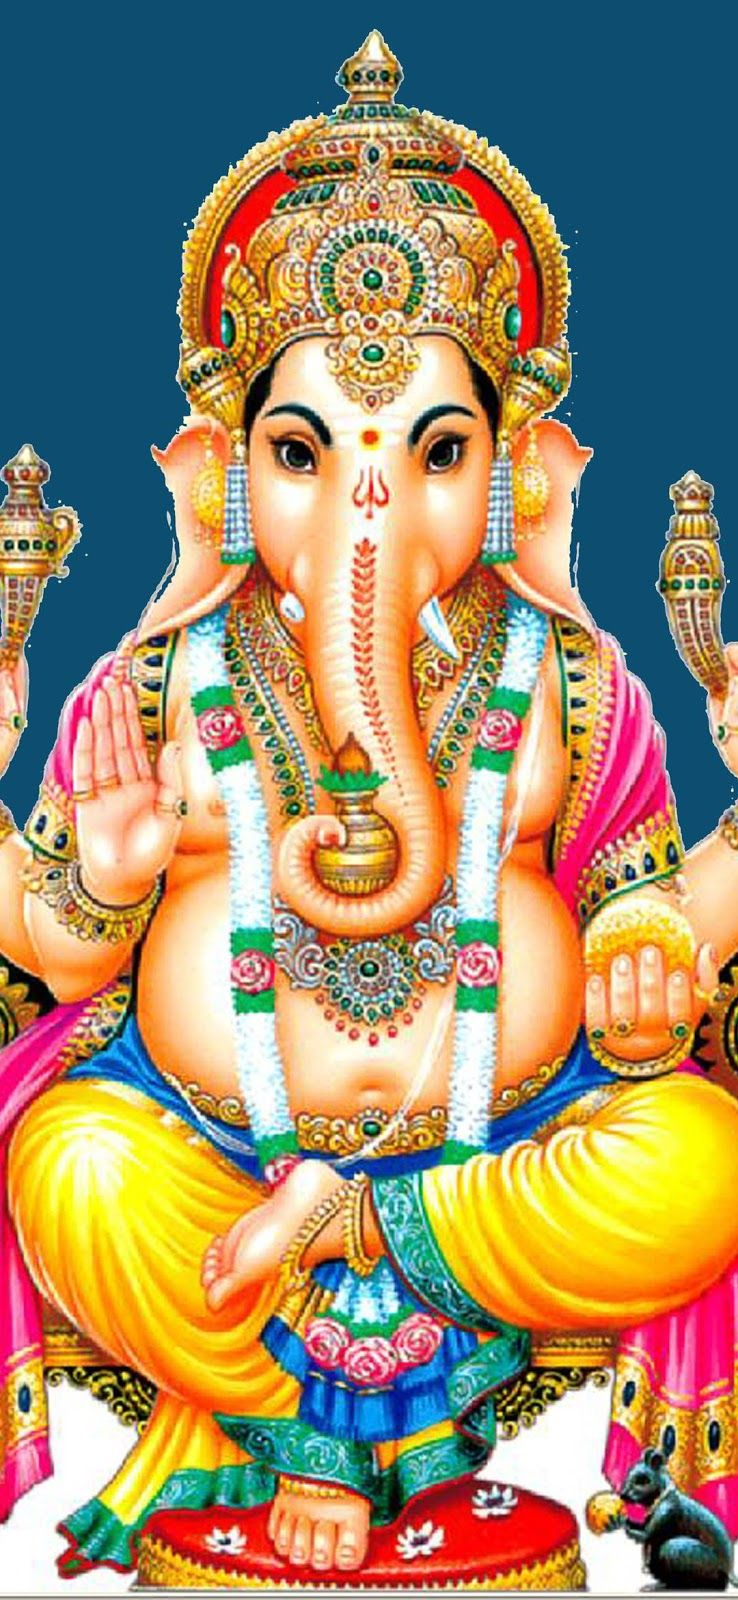 Lord Ganesha Ultra Hd Wallpapers For Mobile And Pc Background God Ganesha Full Hd Wallpapers Ganesh Chat Lord Ganesha Hd Wallpaper Hd Wallpapers For Mobile